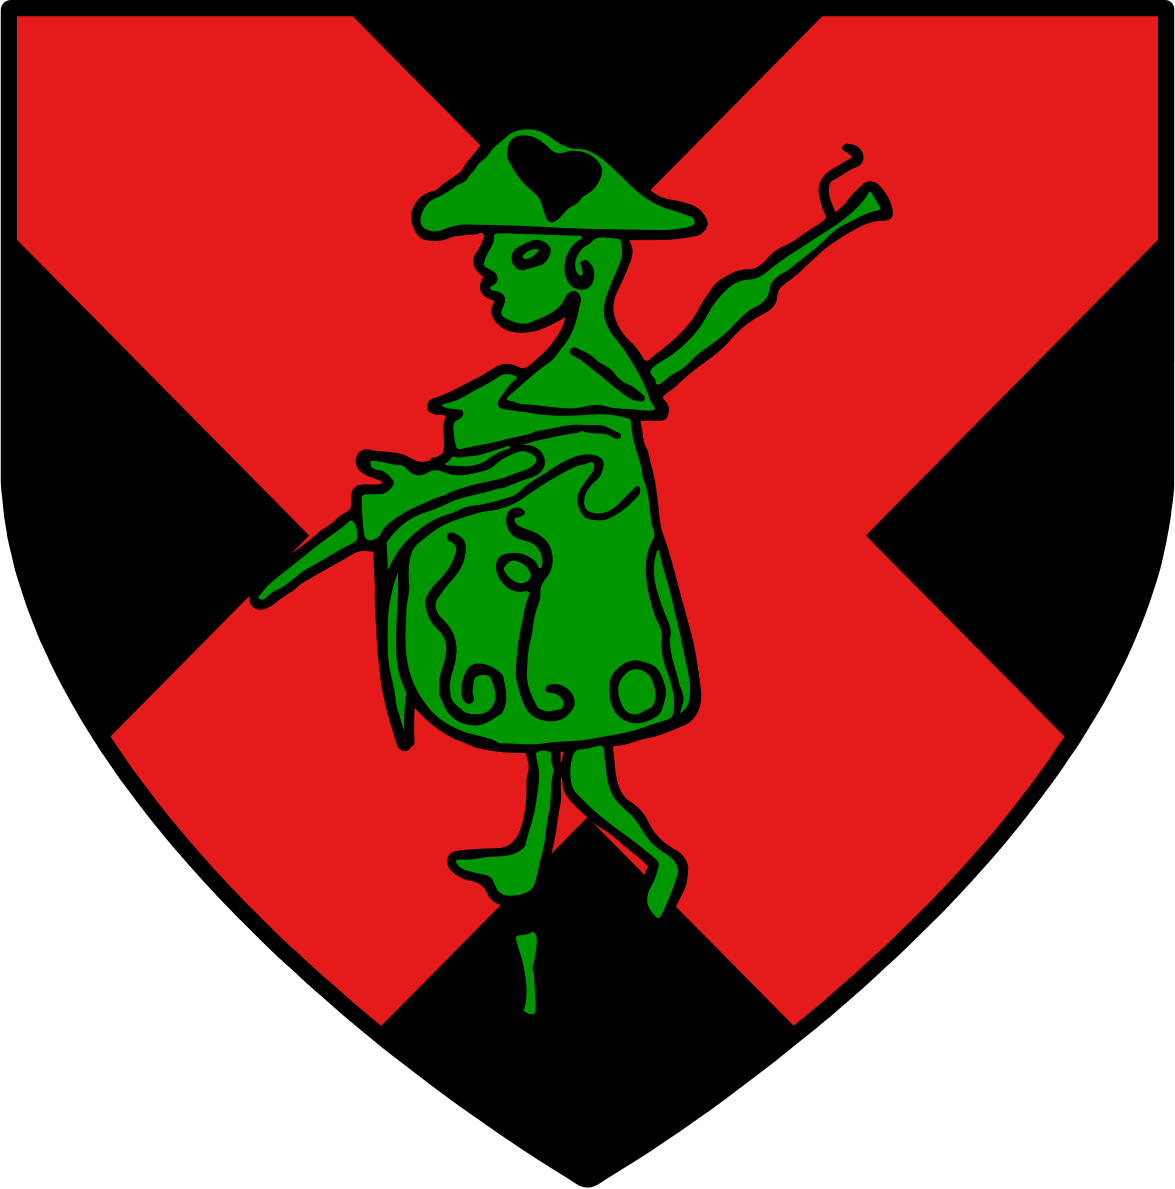 sable_a_Celtic_traveler_vert_in_full__over_a_saltire_gules.png